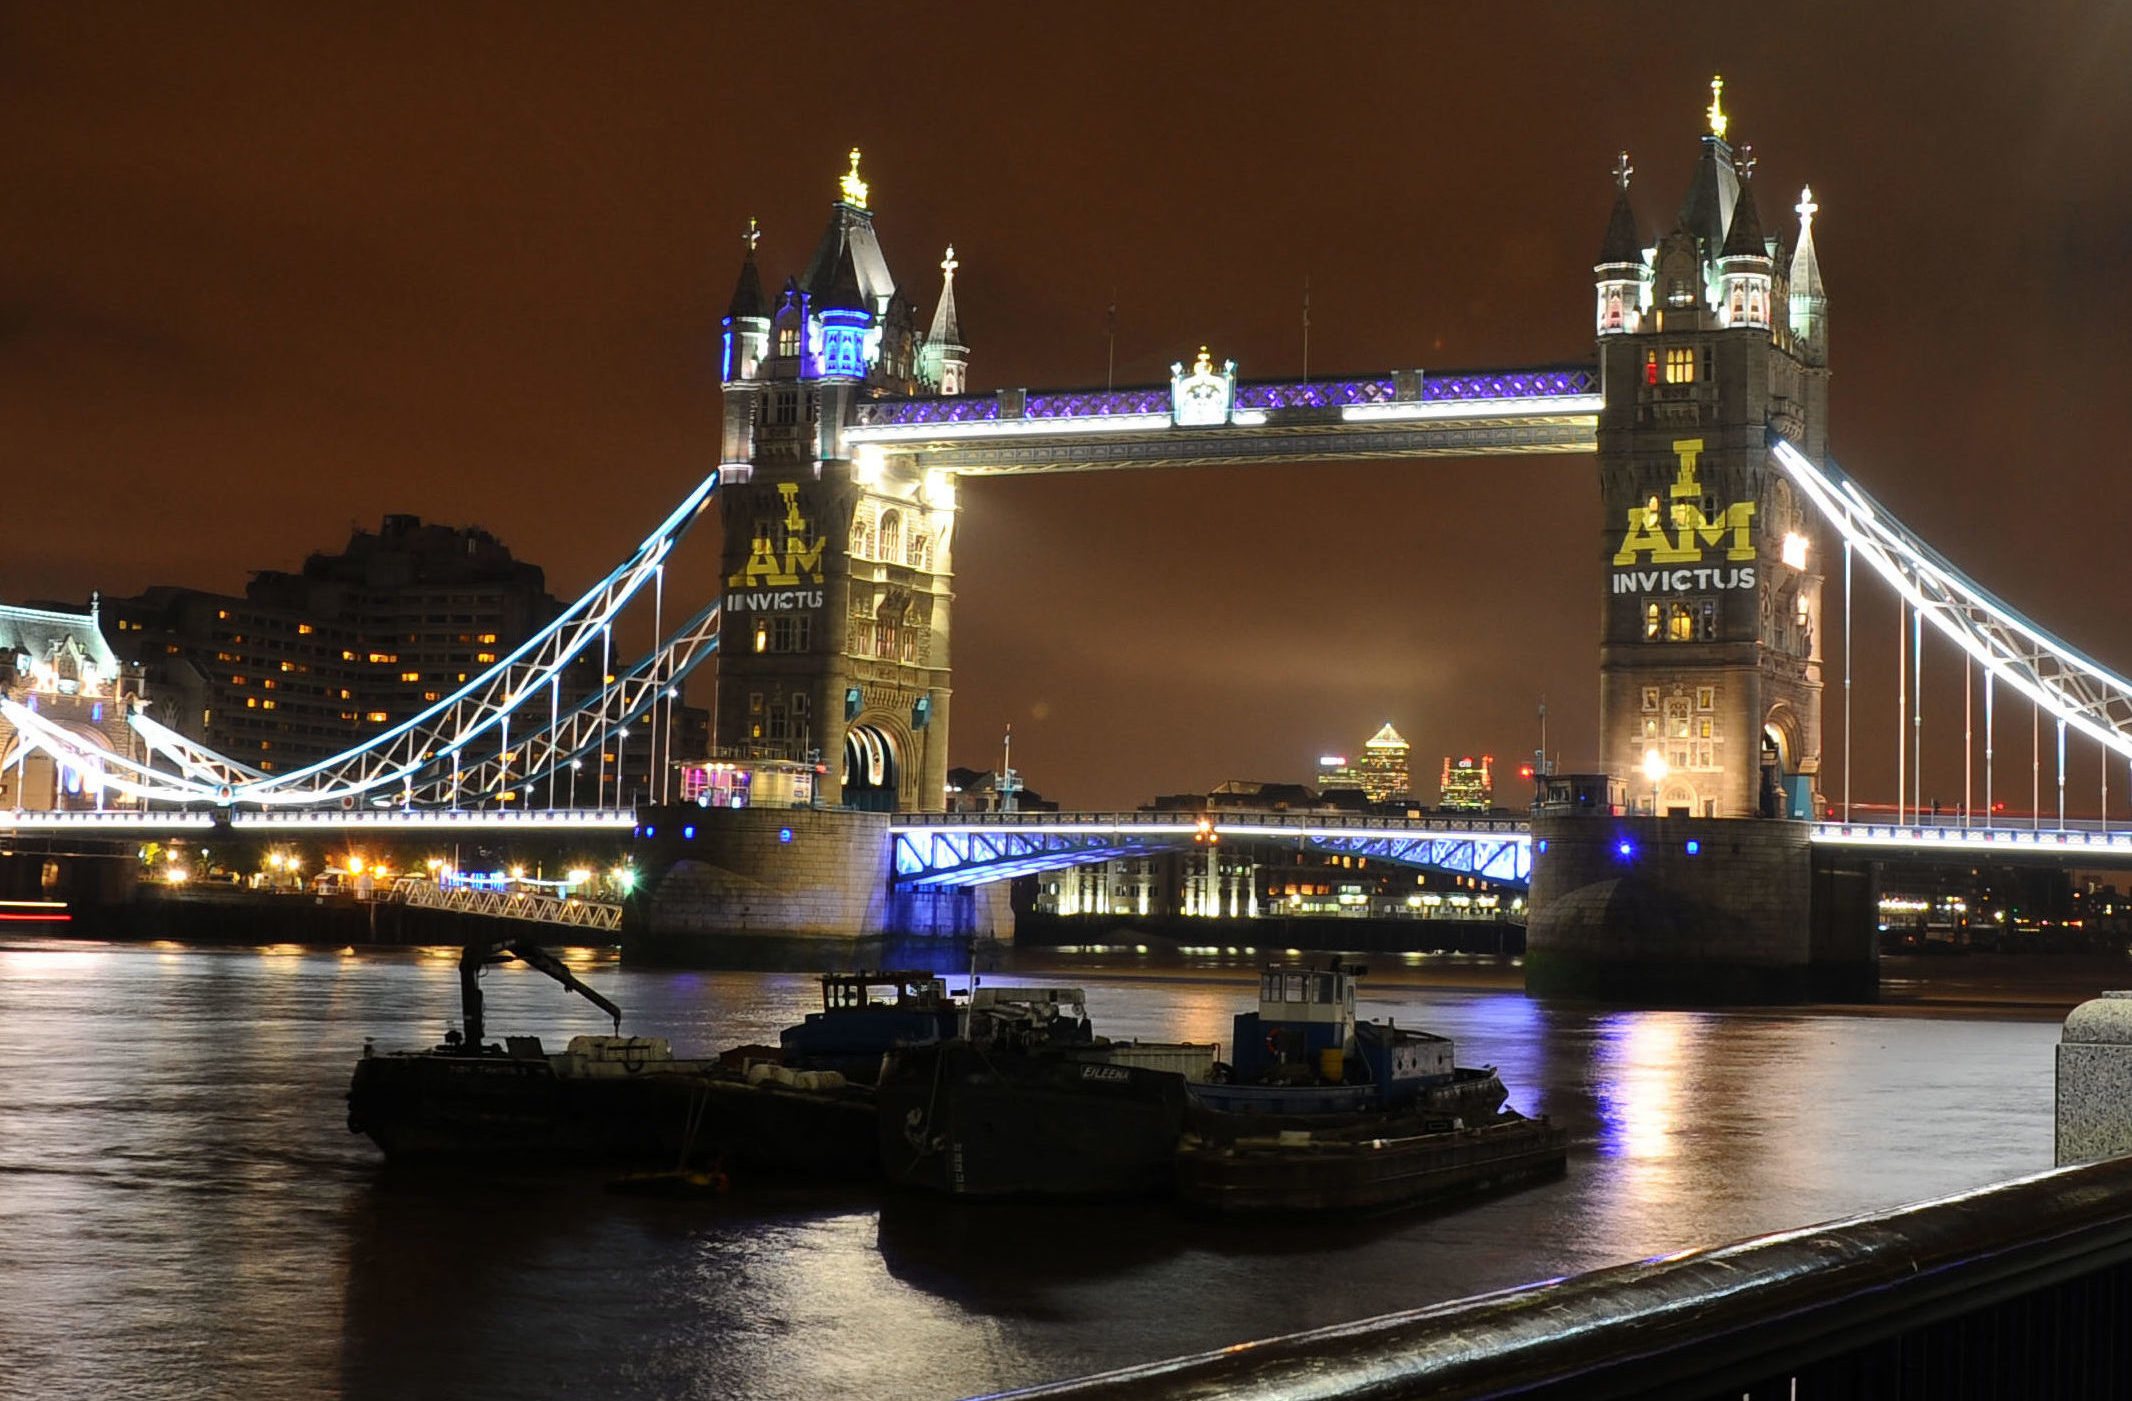 Invictus Games Lights up London With One Week to go to Buy Tickets